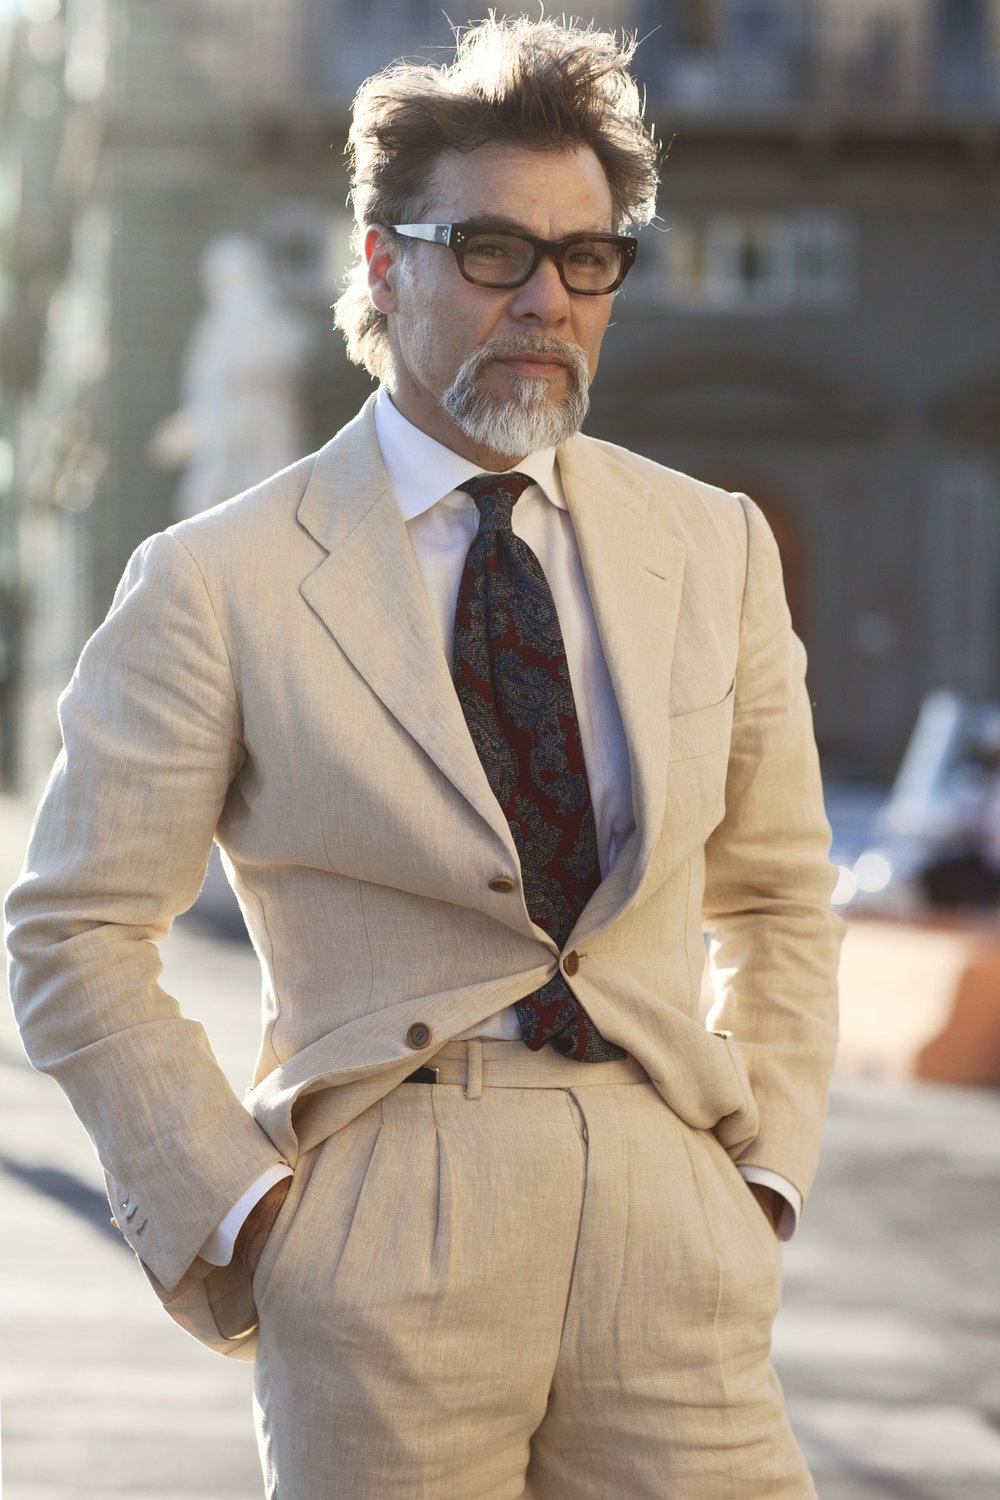 Simone-Righi-frasi-glasses-linen-suit-suit-menswear-streetstyle-icon-fashion-florence.jpg